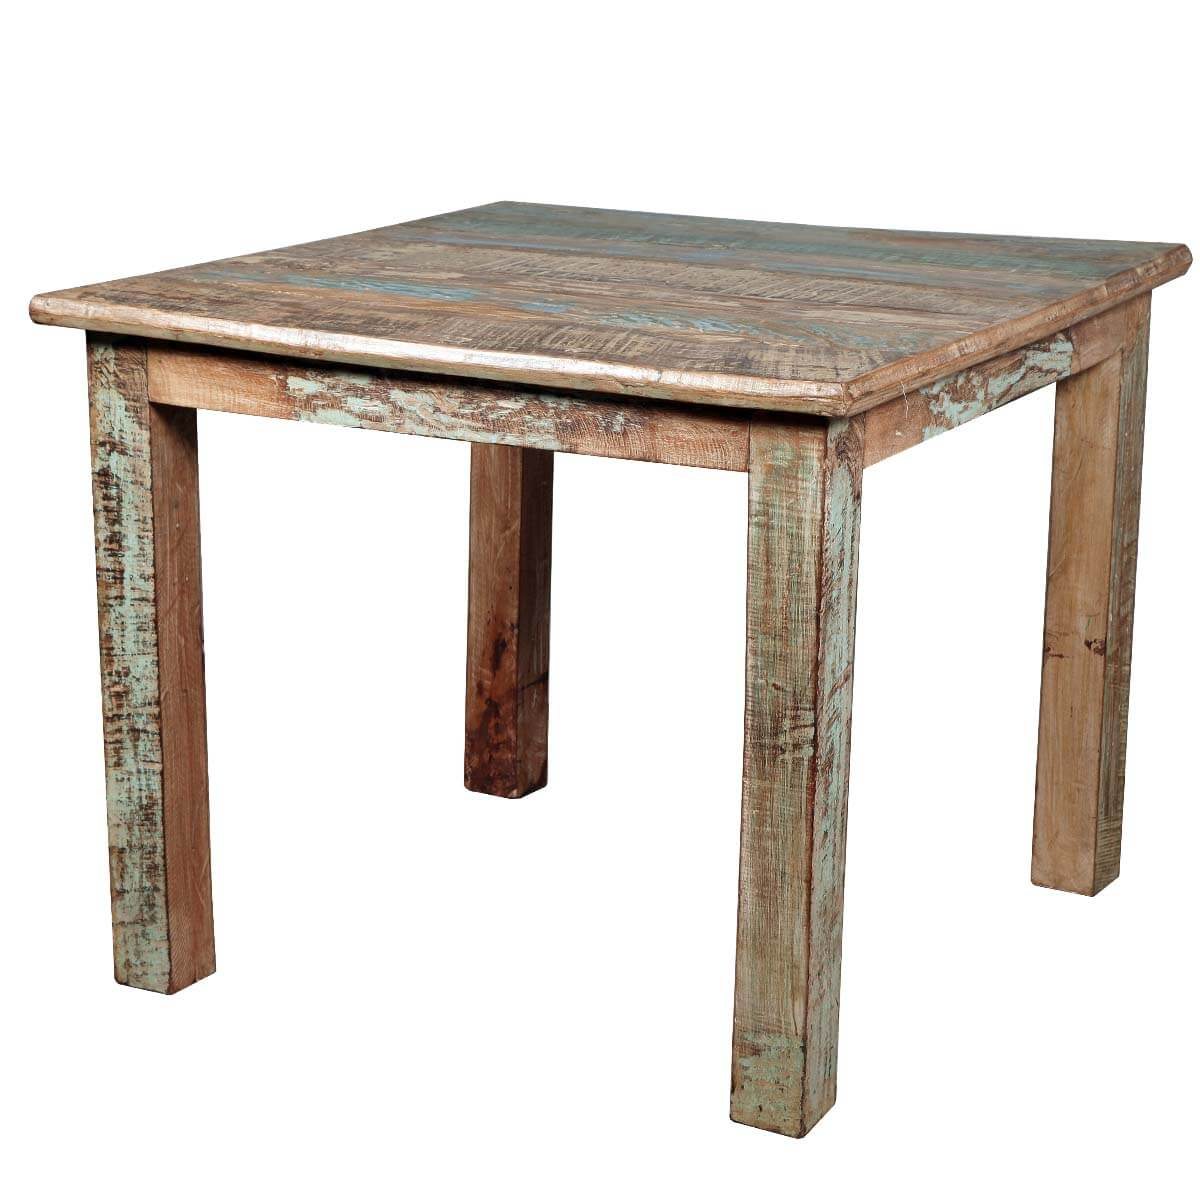 Rustic reclaimed wood distressed small kitchen dining table - Tiny dining tables ...